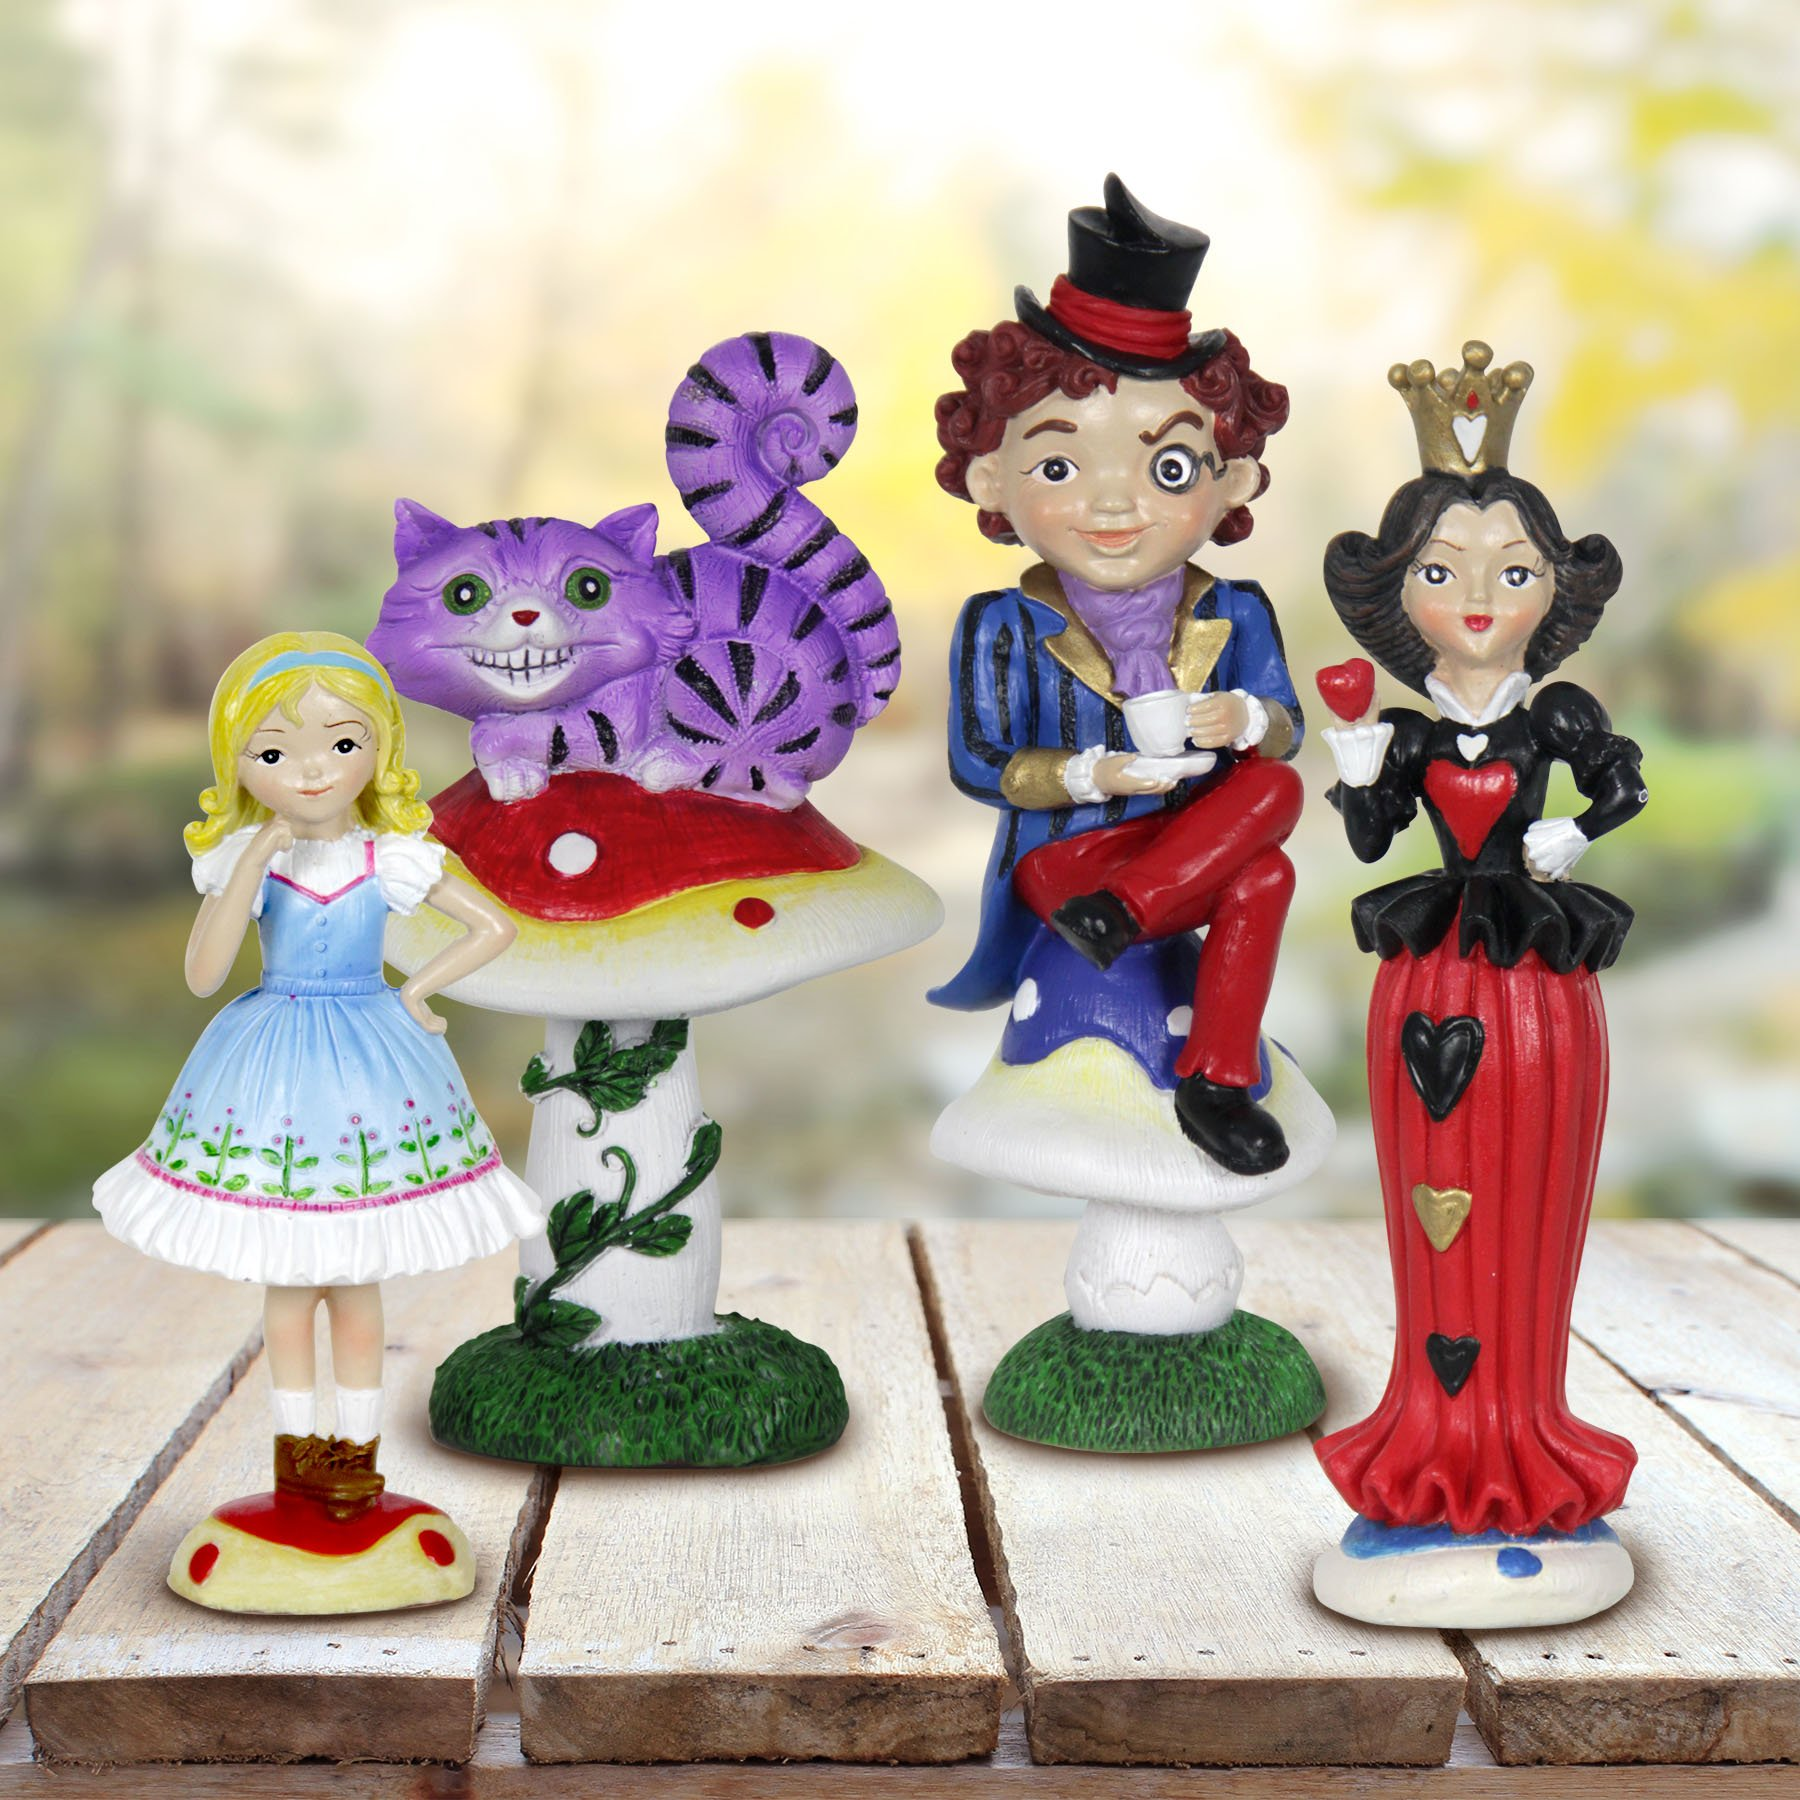 Exhart Alice in Wonderland Mini Figurine Set - Wonderland Mini Statue Garden Set Featuring Alice, Cheshire Cat, Mad Hatter, Queen of Hearts - Decorative Resin Statues for a Fairy Garden